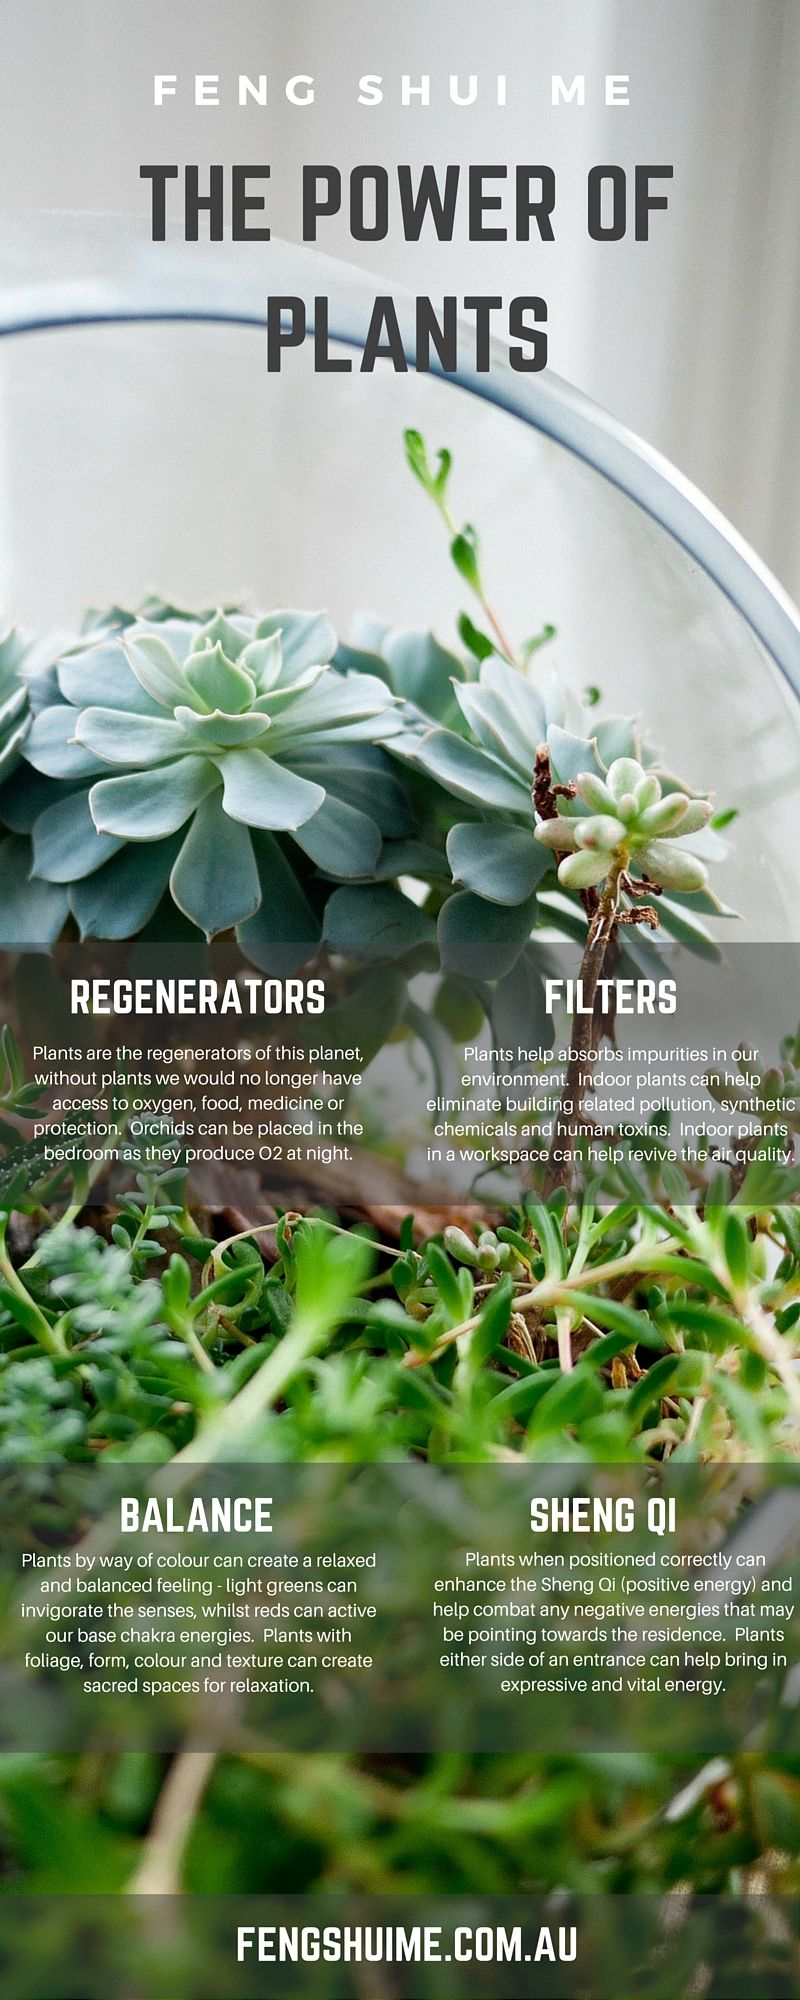 The Power Of Plants Feng Shui Regenerate Filter